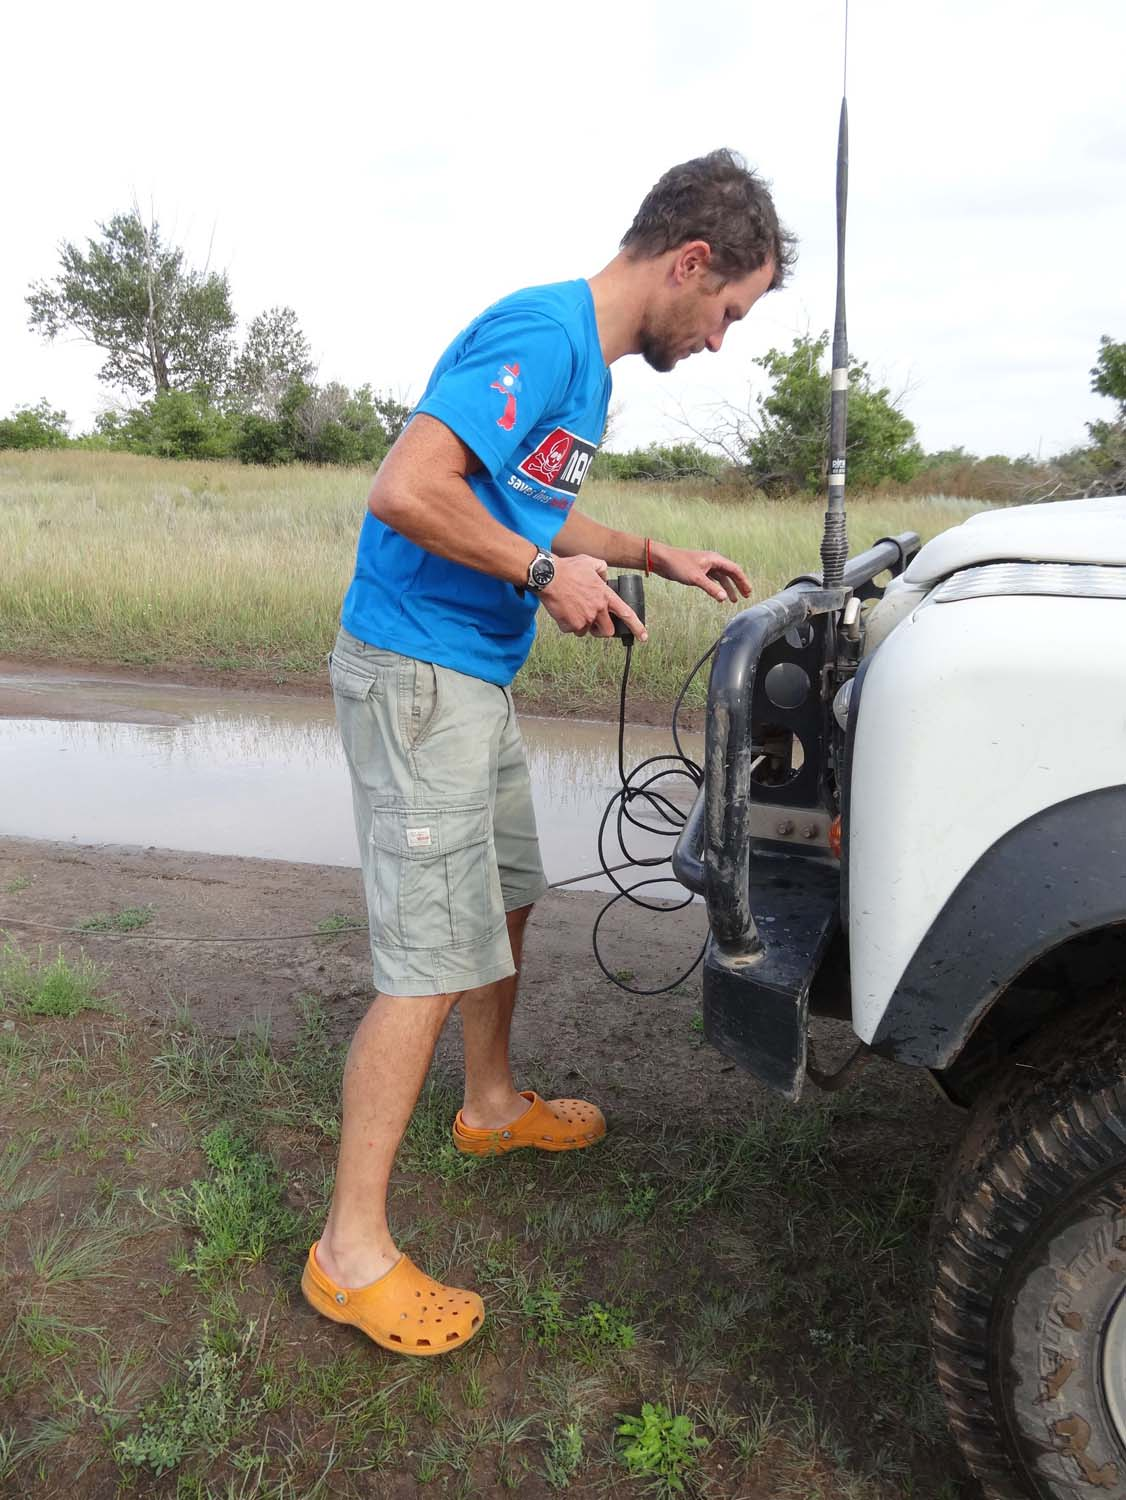 getting the winch ready to pull a local out of the mud